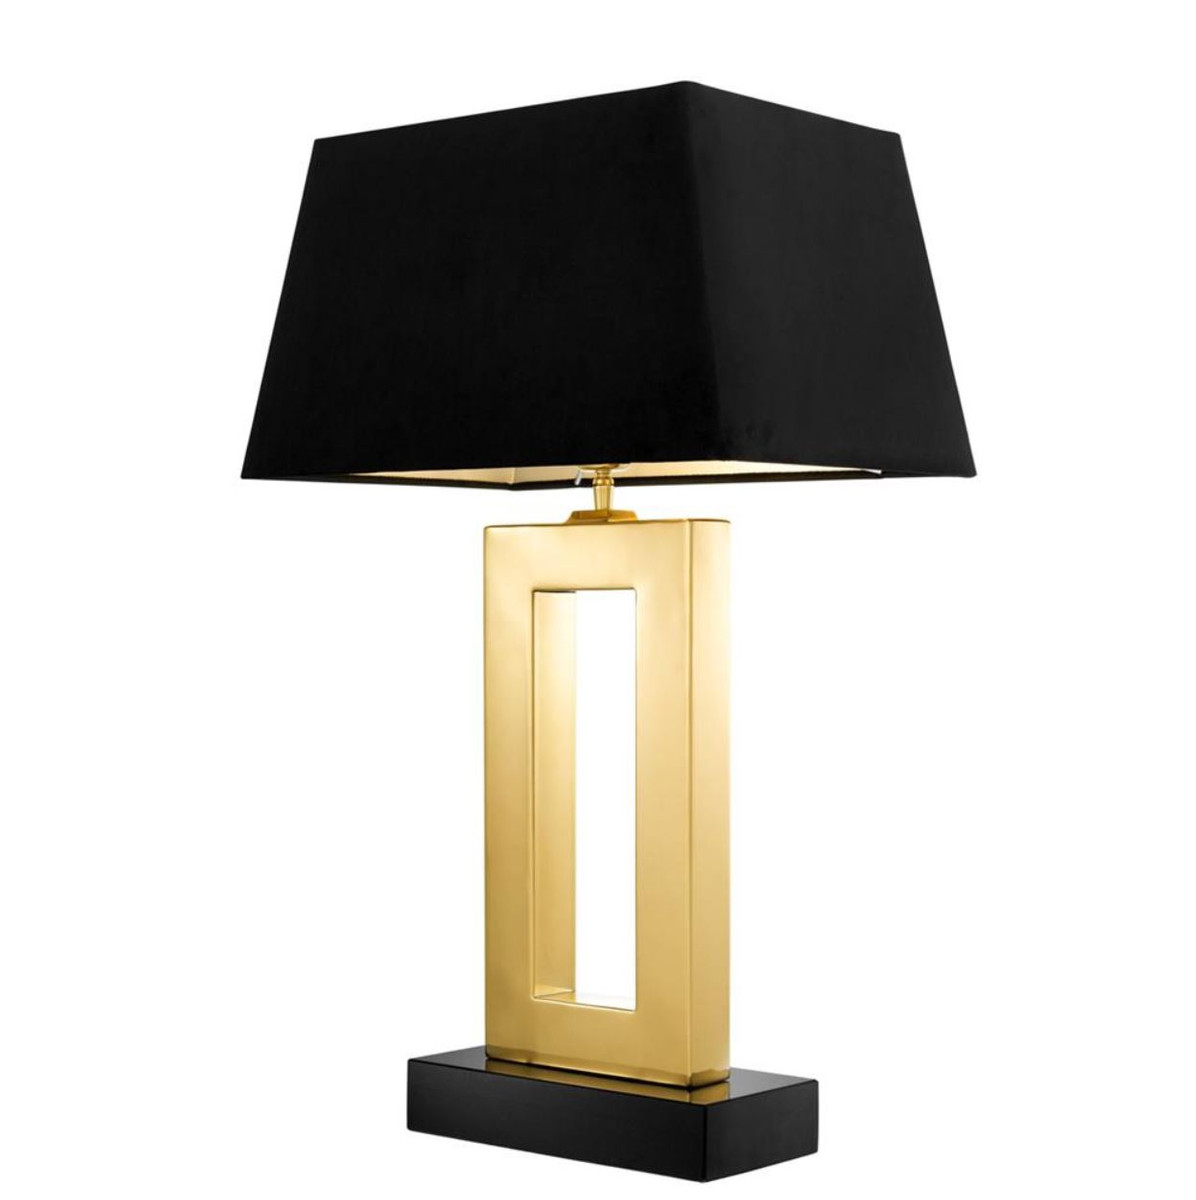 Designer Tischleuchten Casa Padrino Designer Table Light 45 X H 71 Cm Luxury Table Lamp